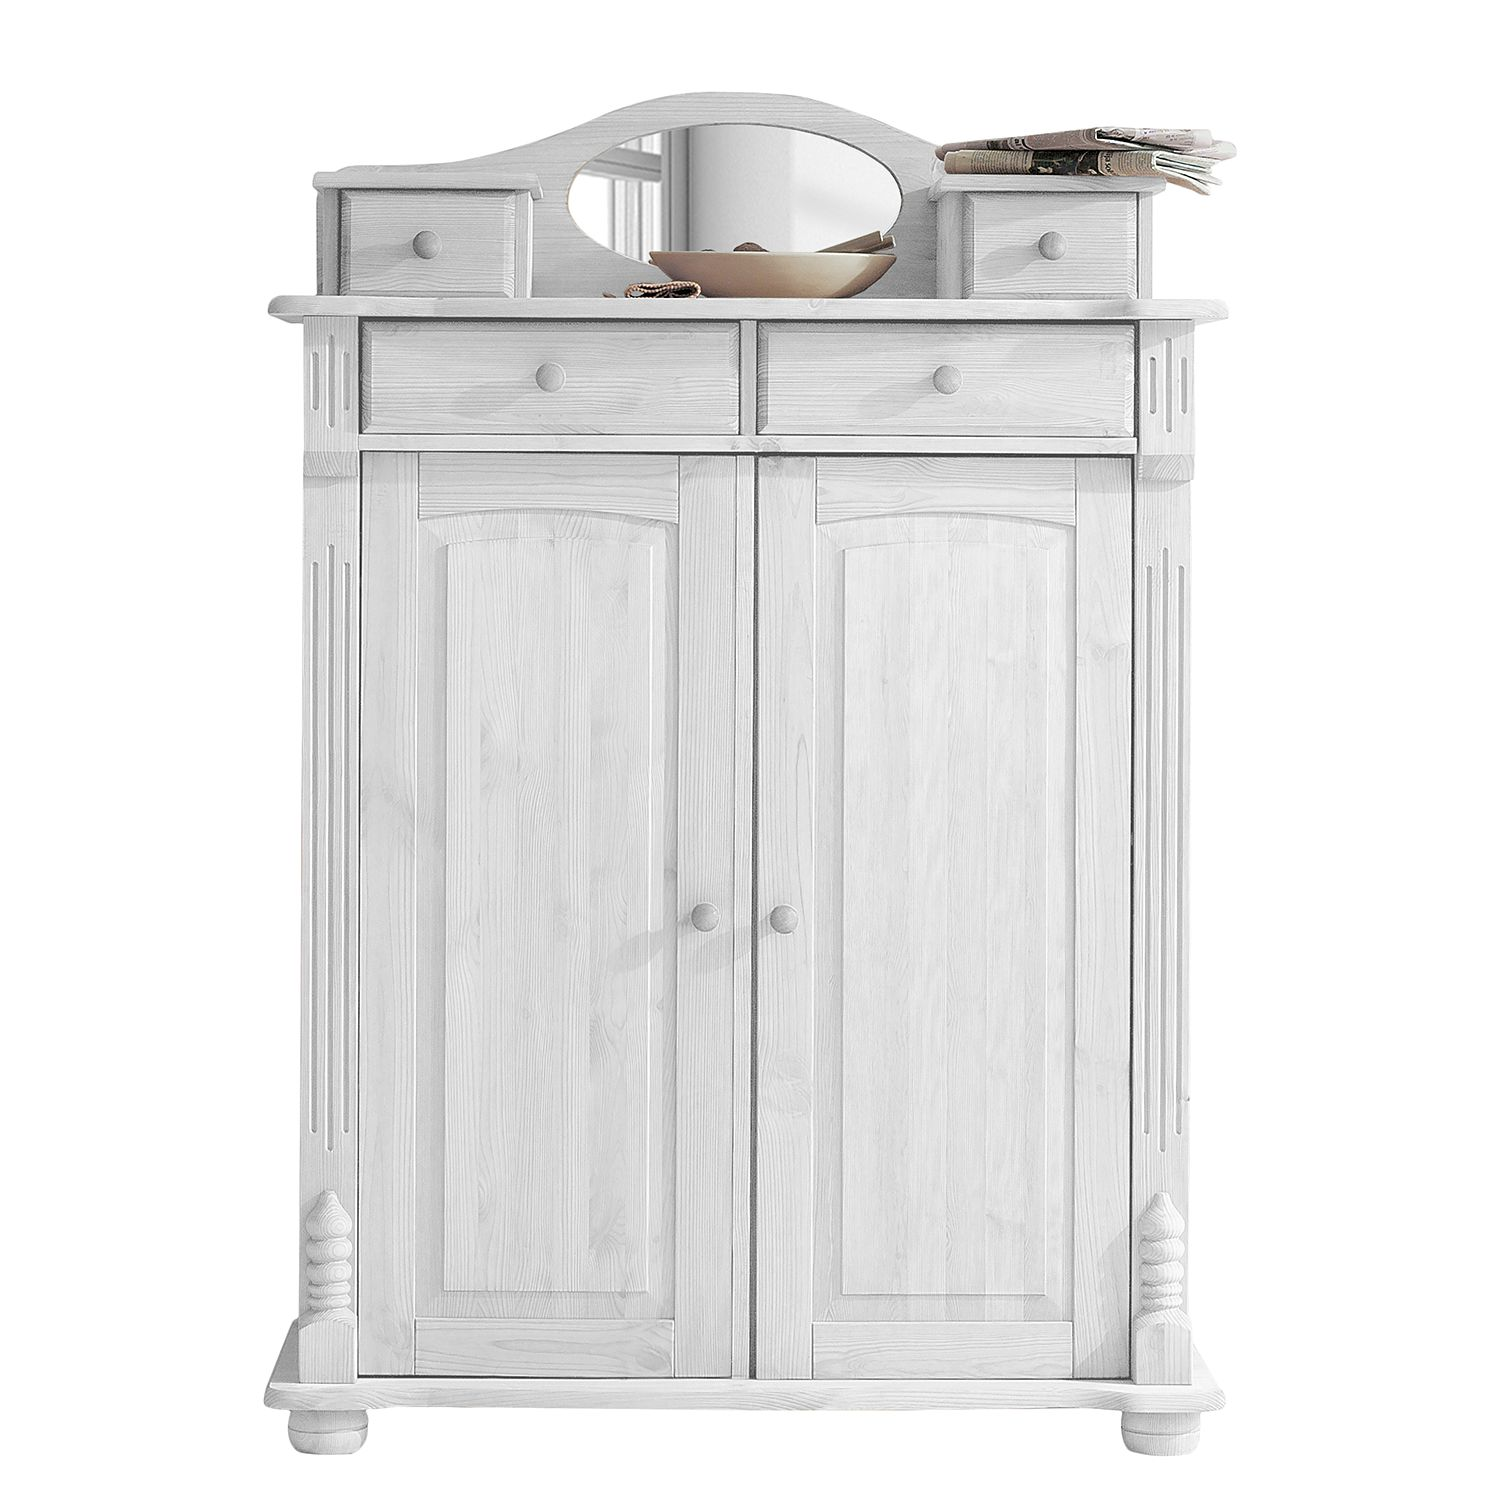 Armoire commode Narva - Pin massif - Epicéa blanc, Maison Belfort